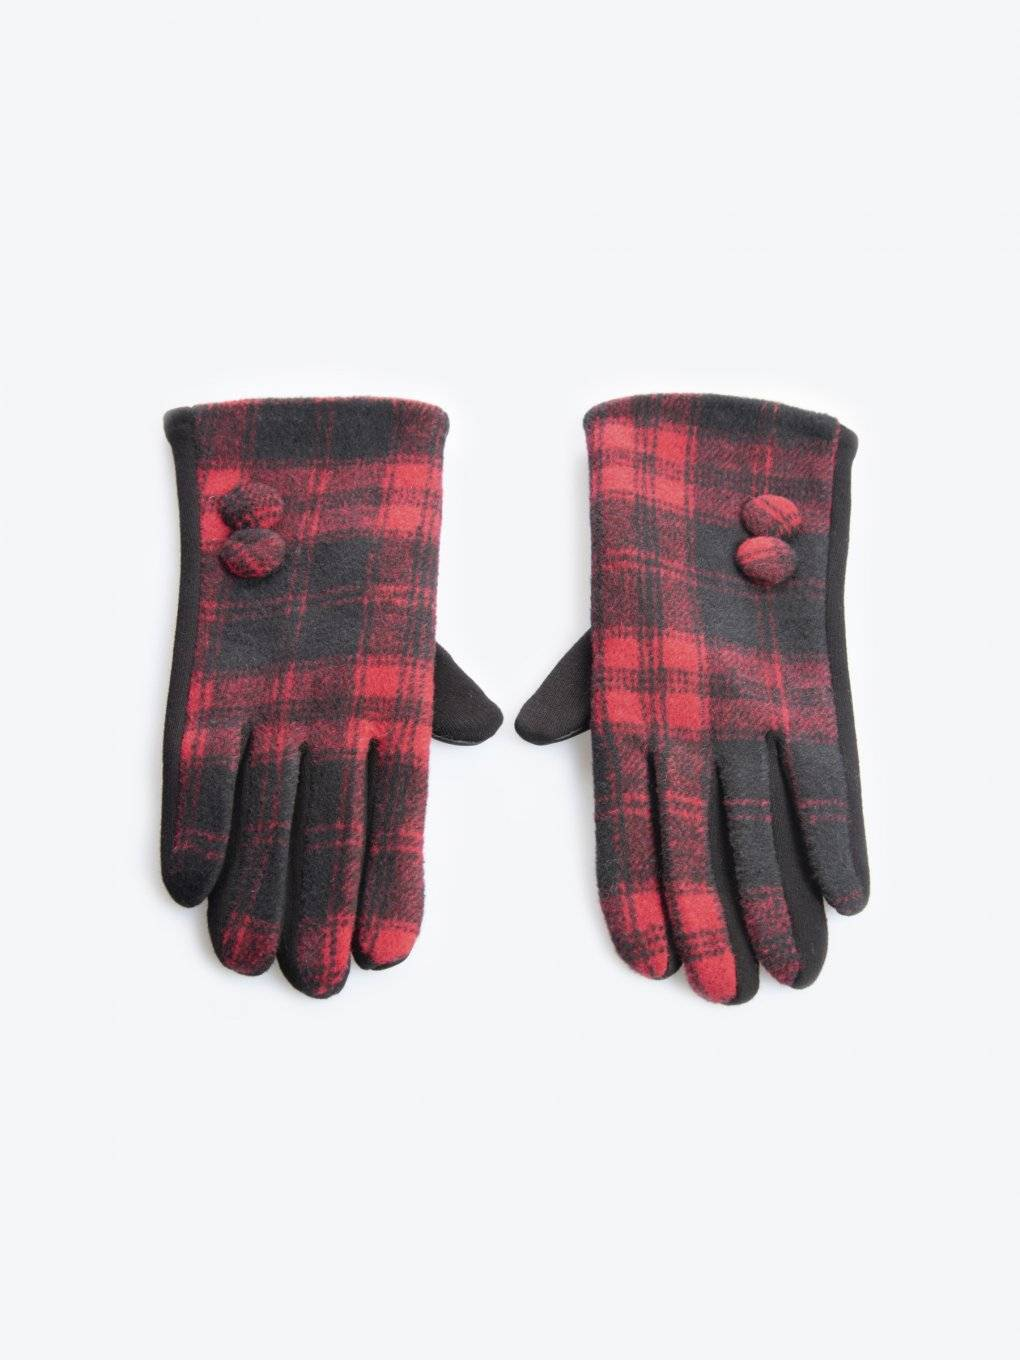 Plaid gloves with buttons